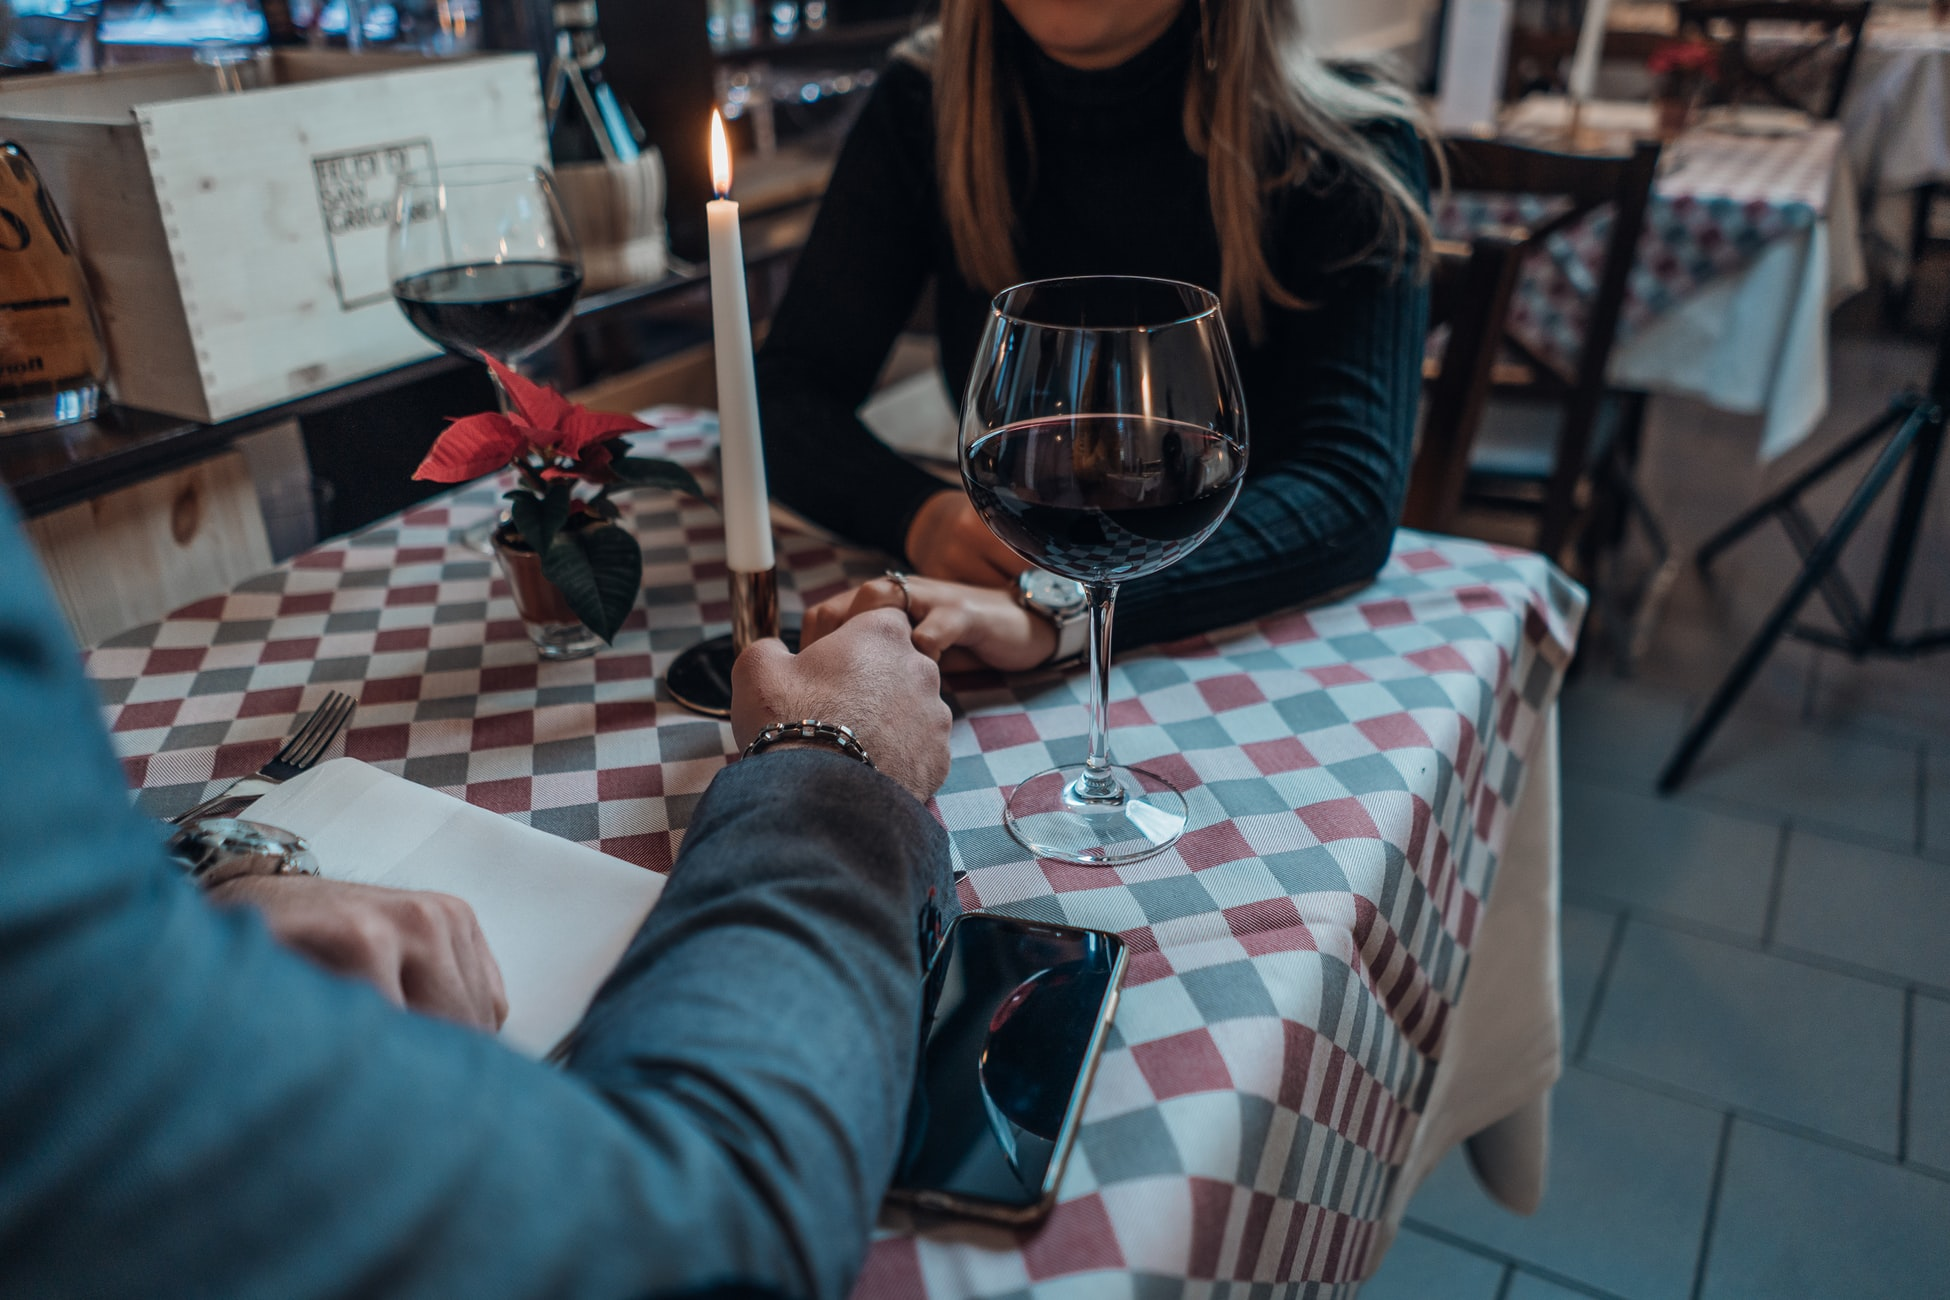 couple having a date at a restaurant, candlelit dinner, romantic, dating